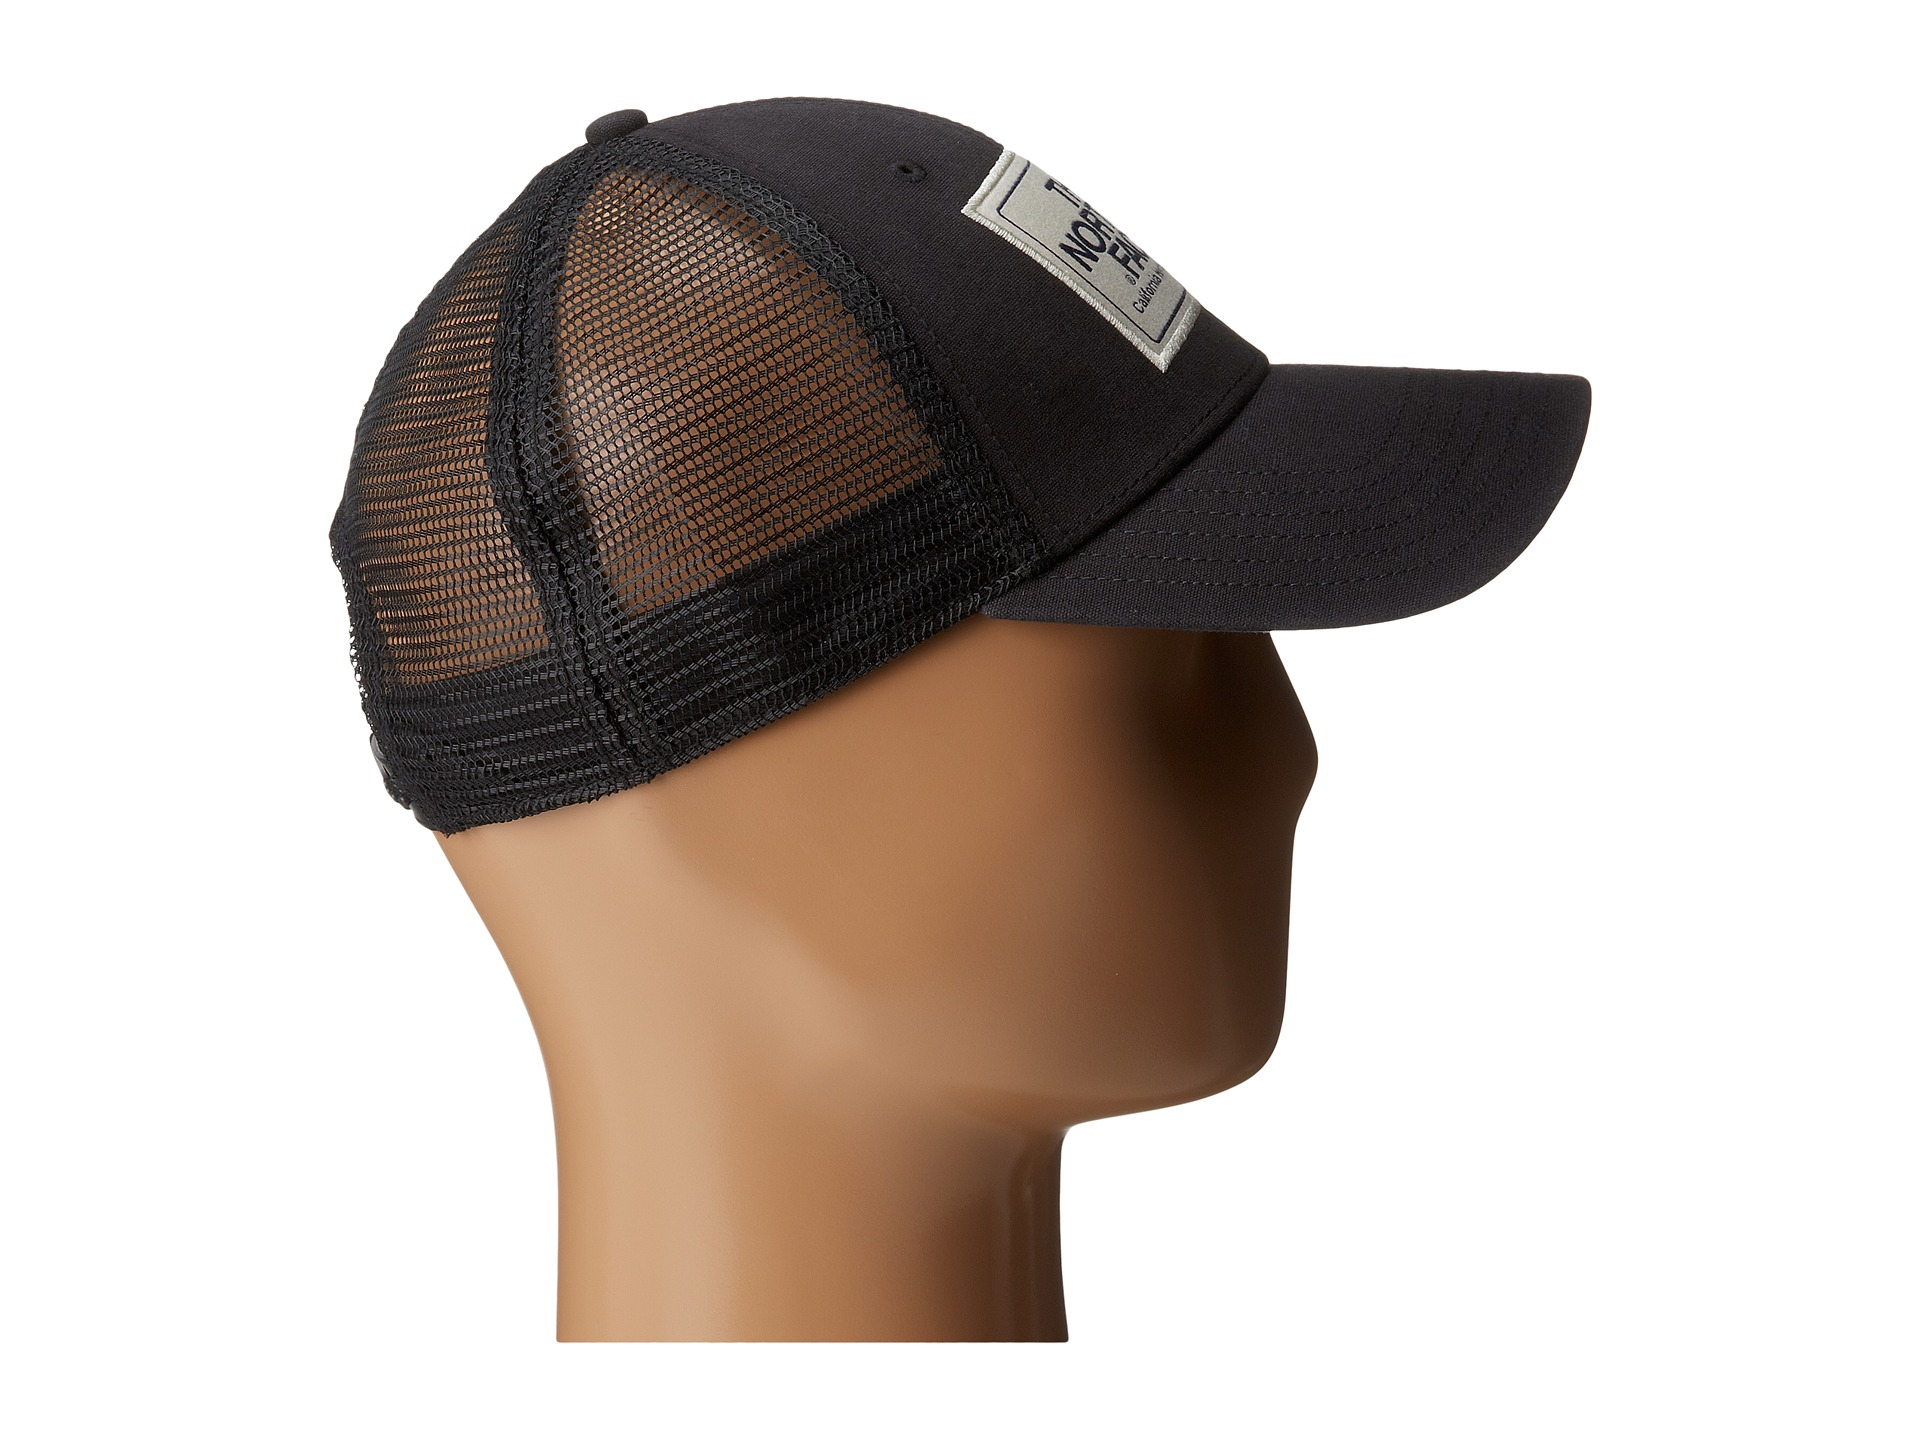 d2a24192ebd403 The North Face Mudder Trucker Hat W/ Logo Patch in Black - Lyst